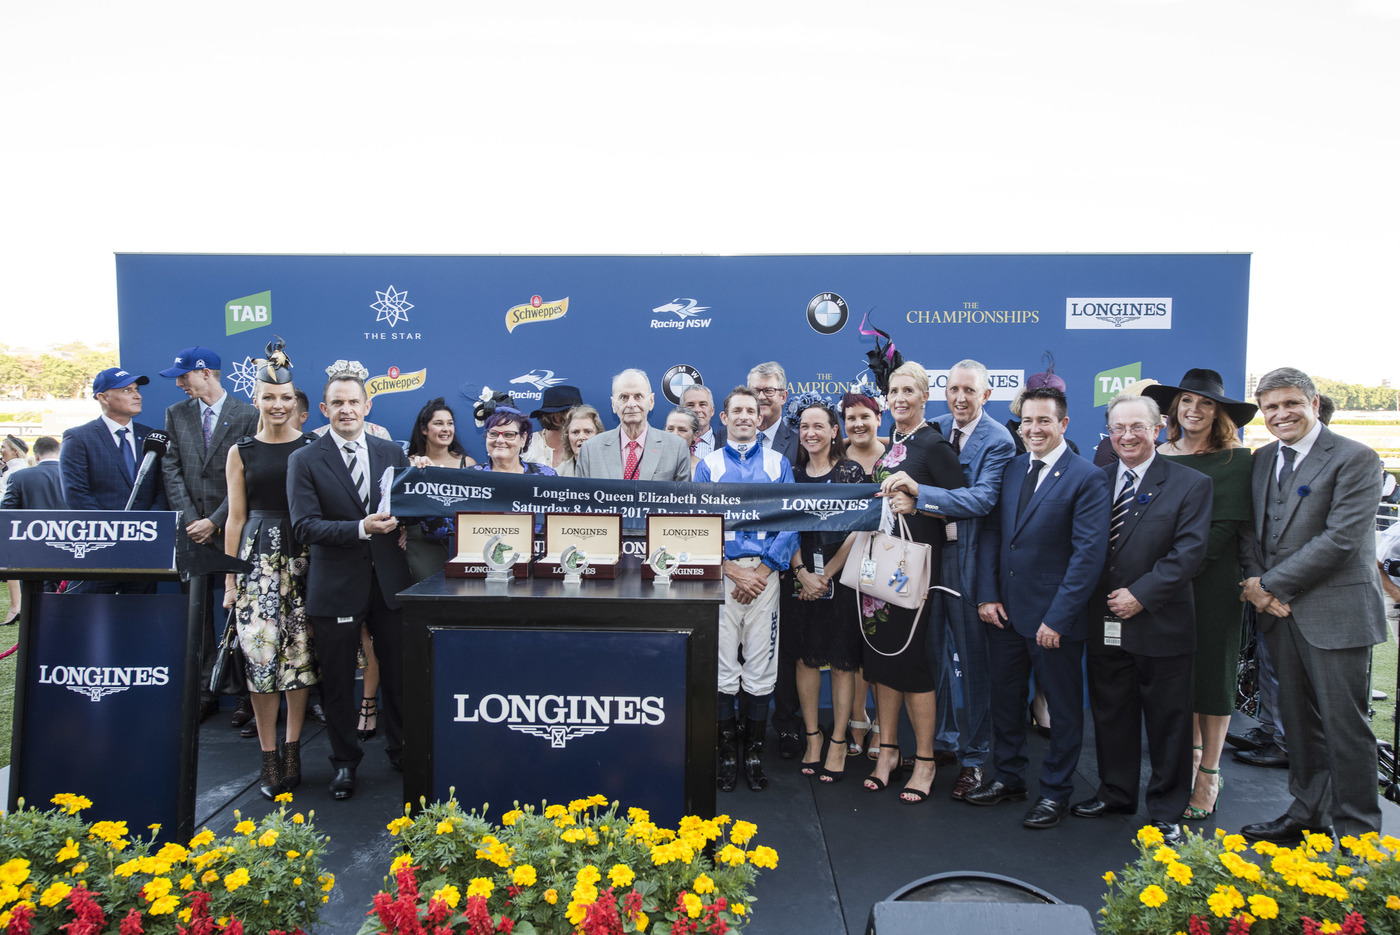 Longines Flat Racing Event: The Longines Queen Elizabeth Stakes brings the Sydney Carnival to an elegant close 9